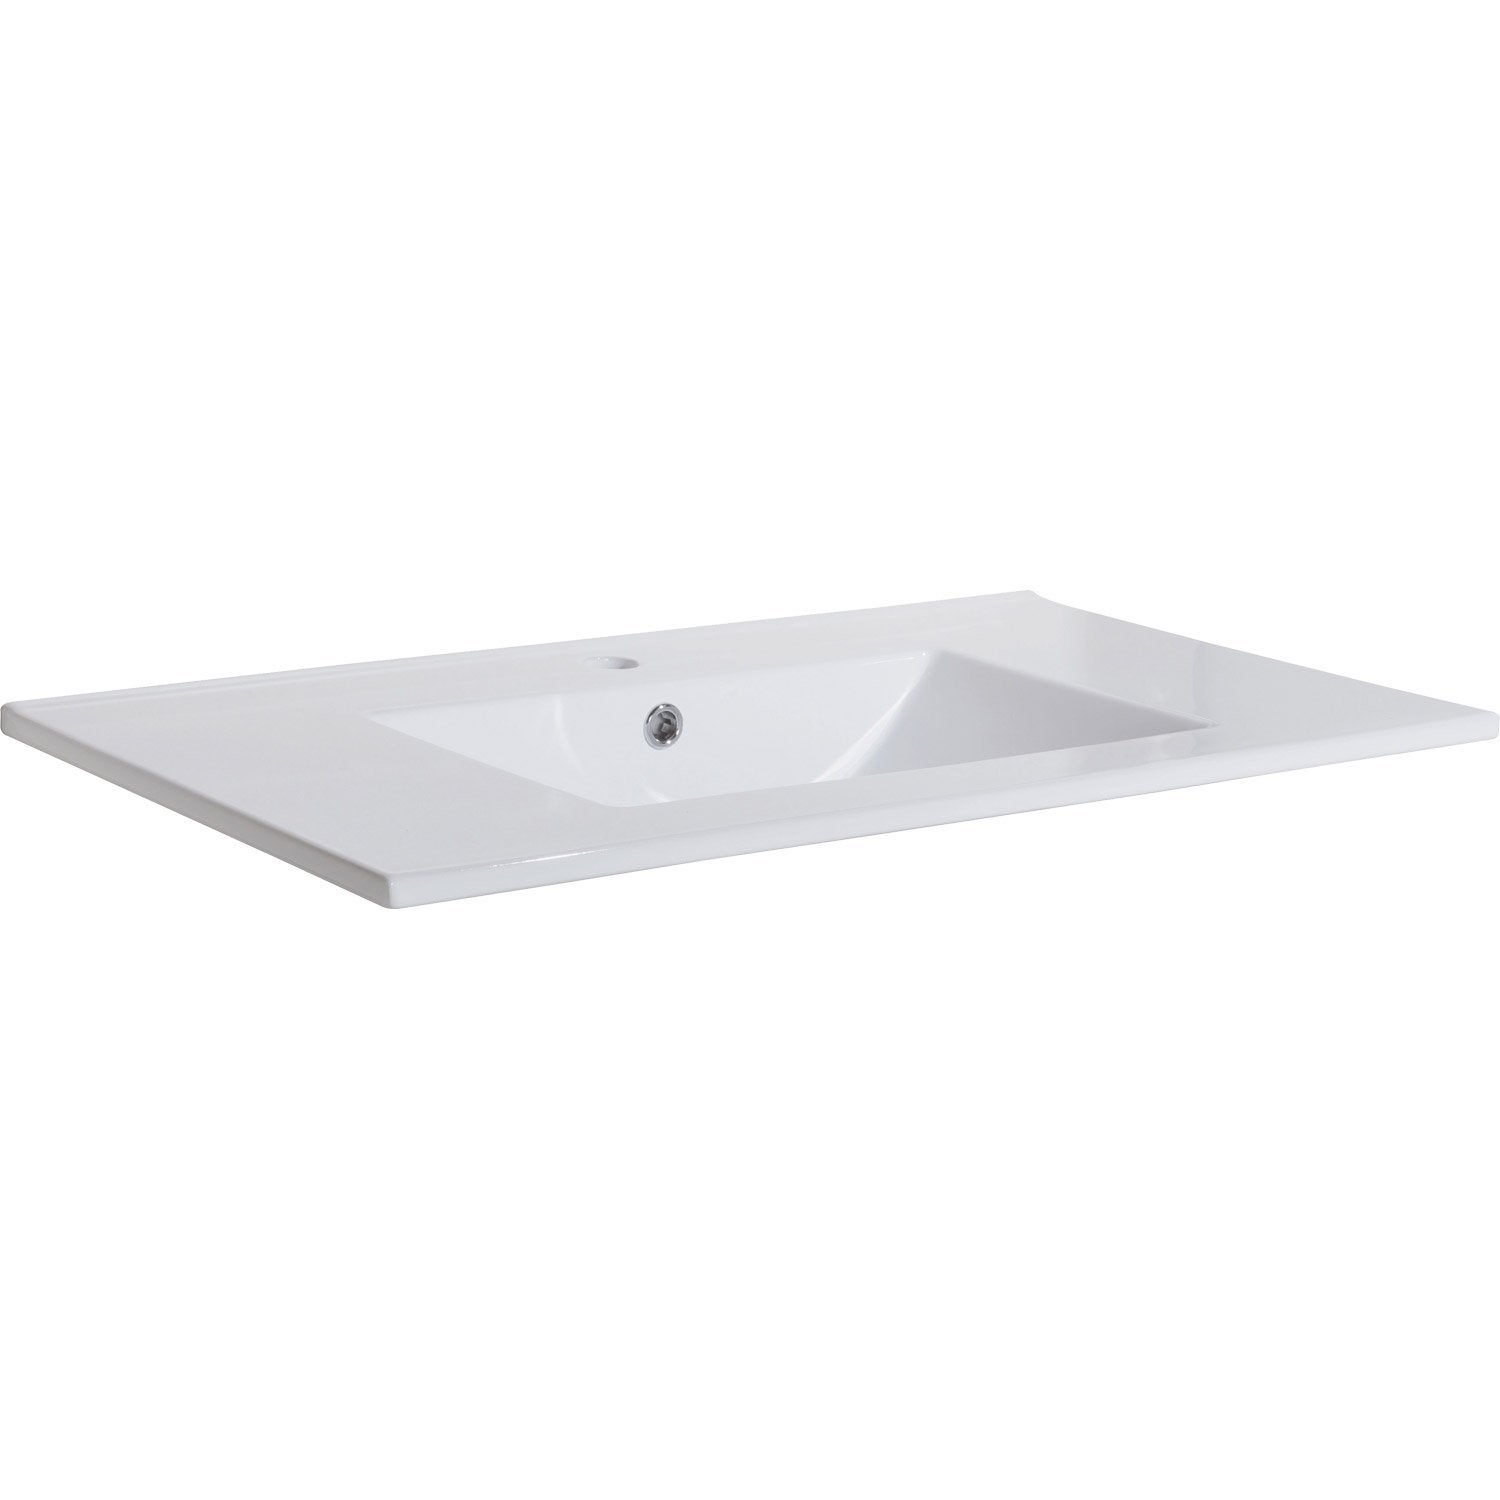 Plan vasque simple sensea dado c ramique blanc l81xl18xp46 for Salle de bain rectangulaire 8m2